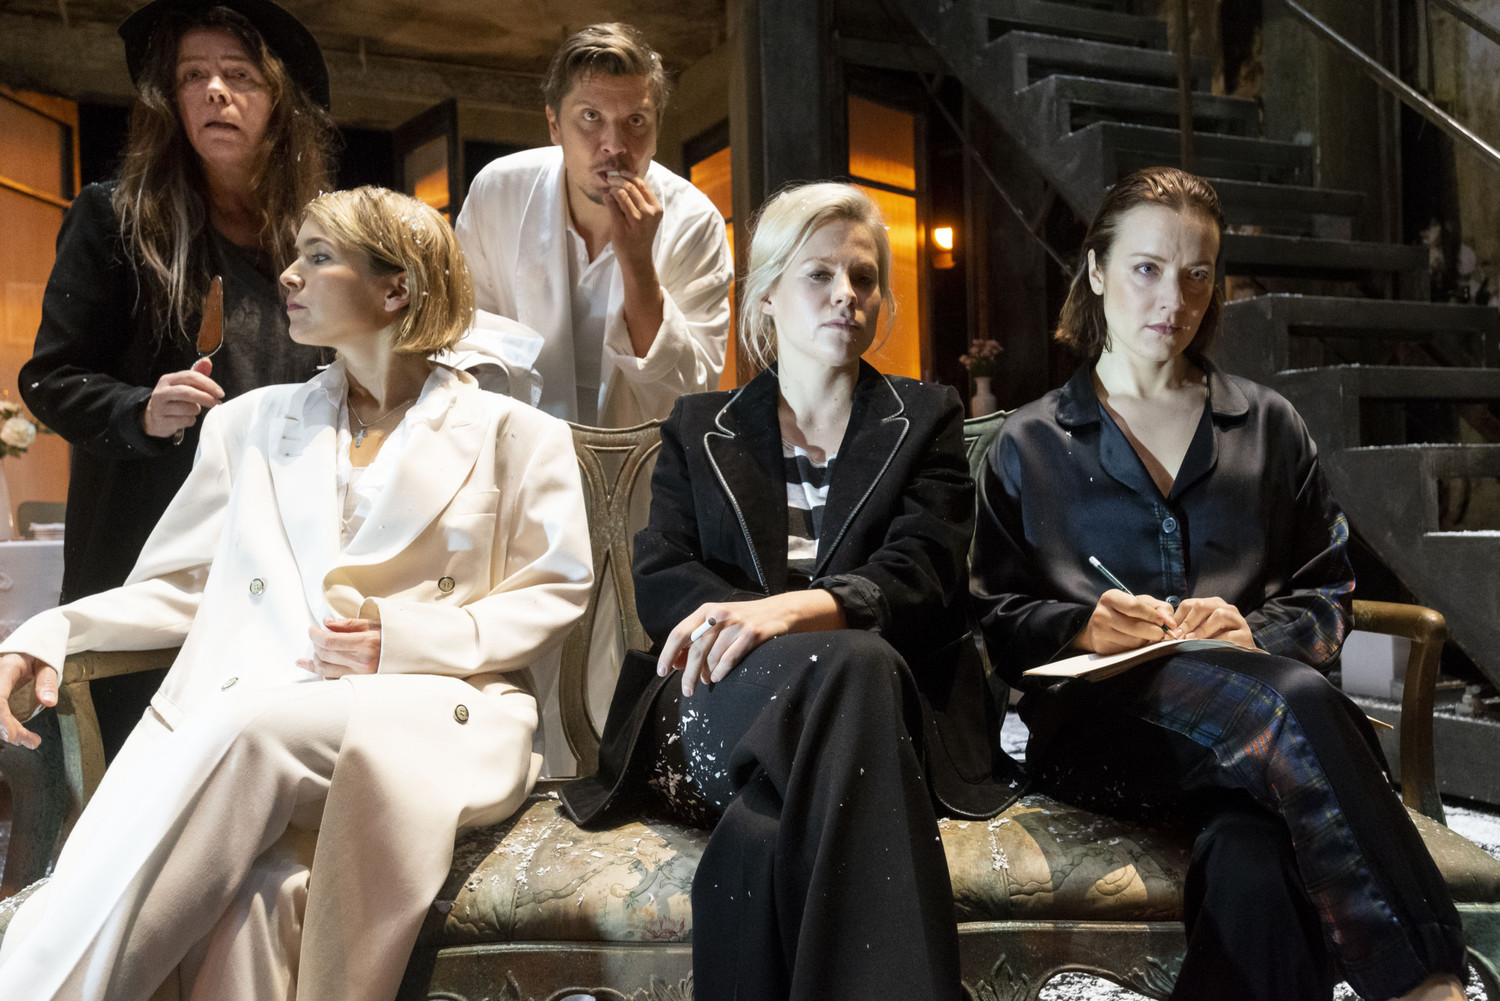 Review and analysis: CHEKHOV'S THREE SISTERS at the Finnish National Theatre